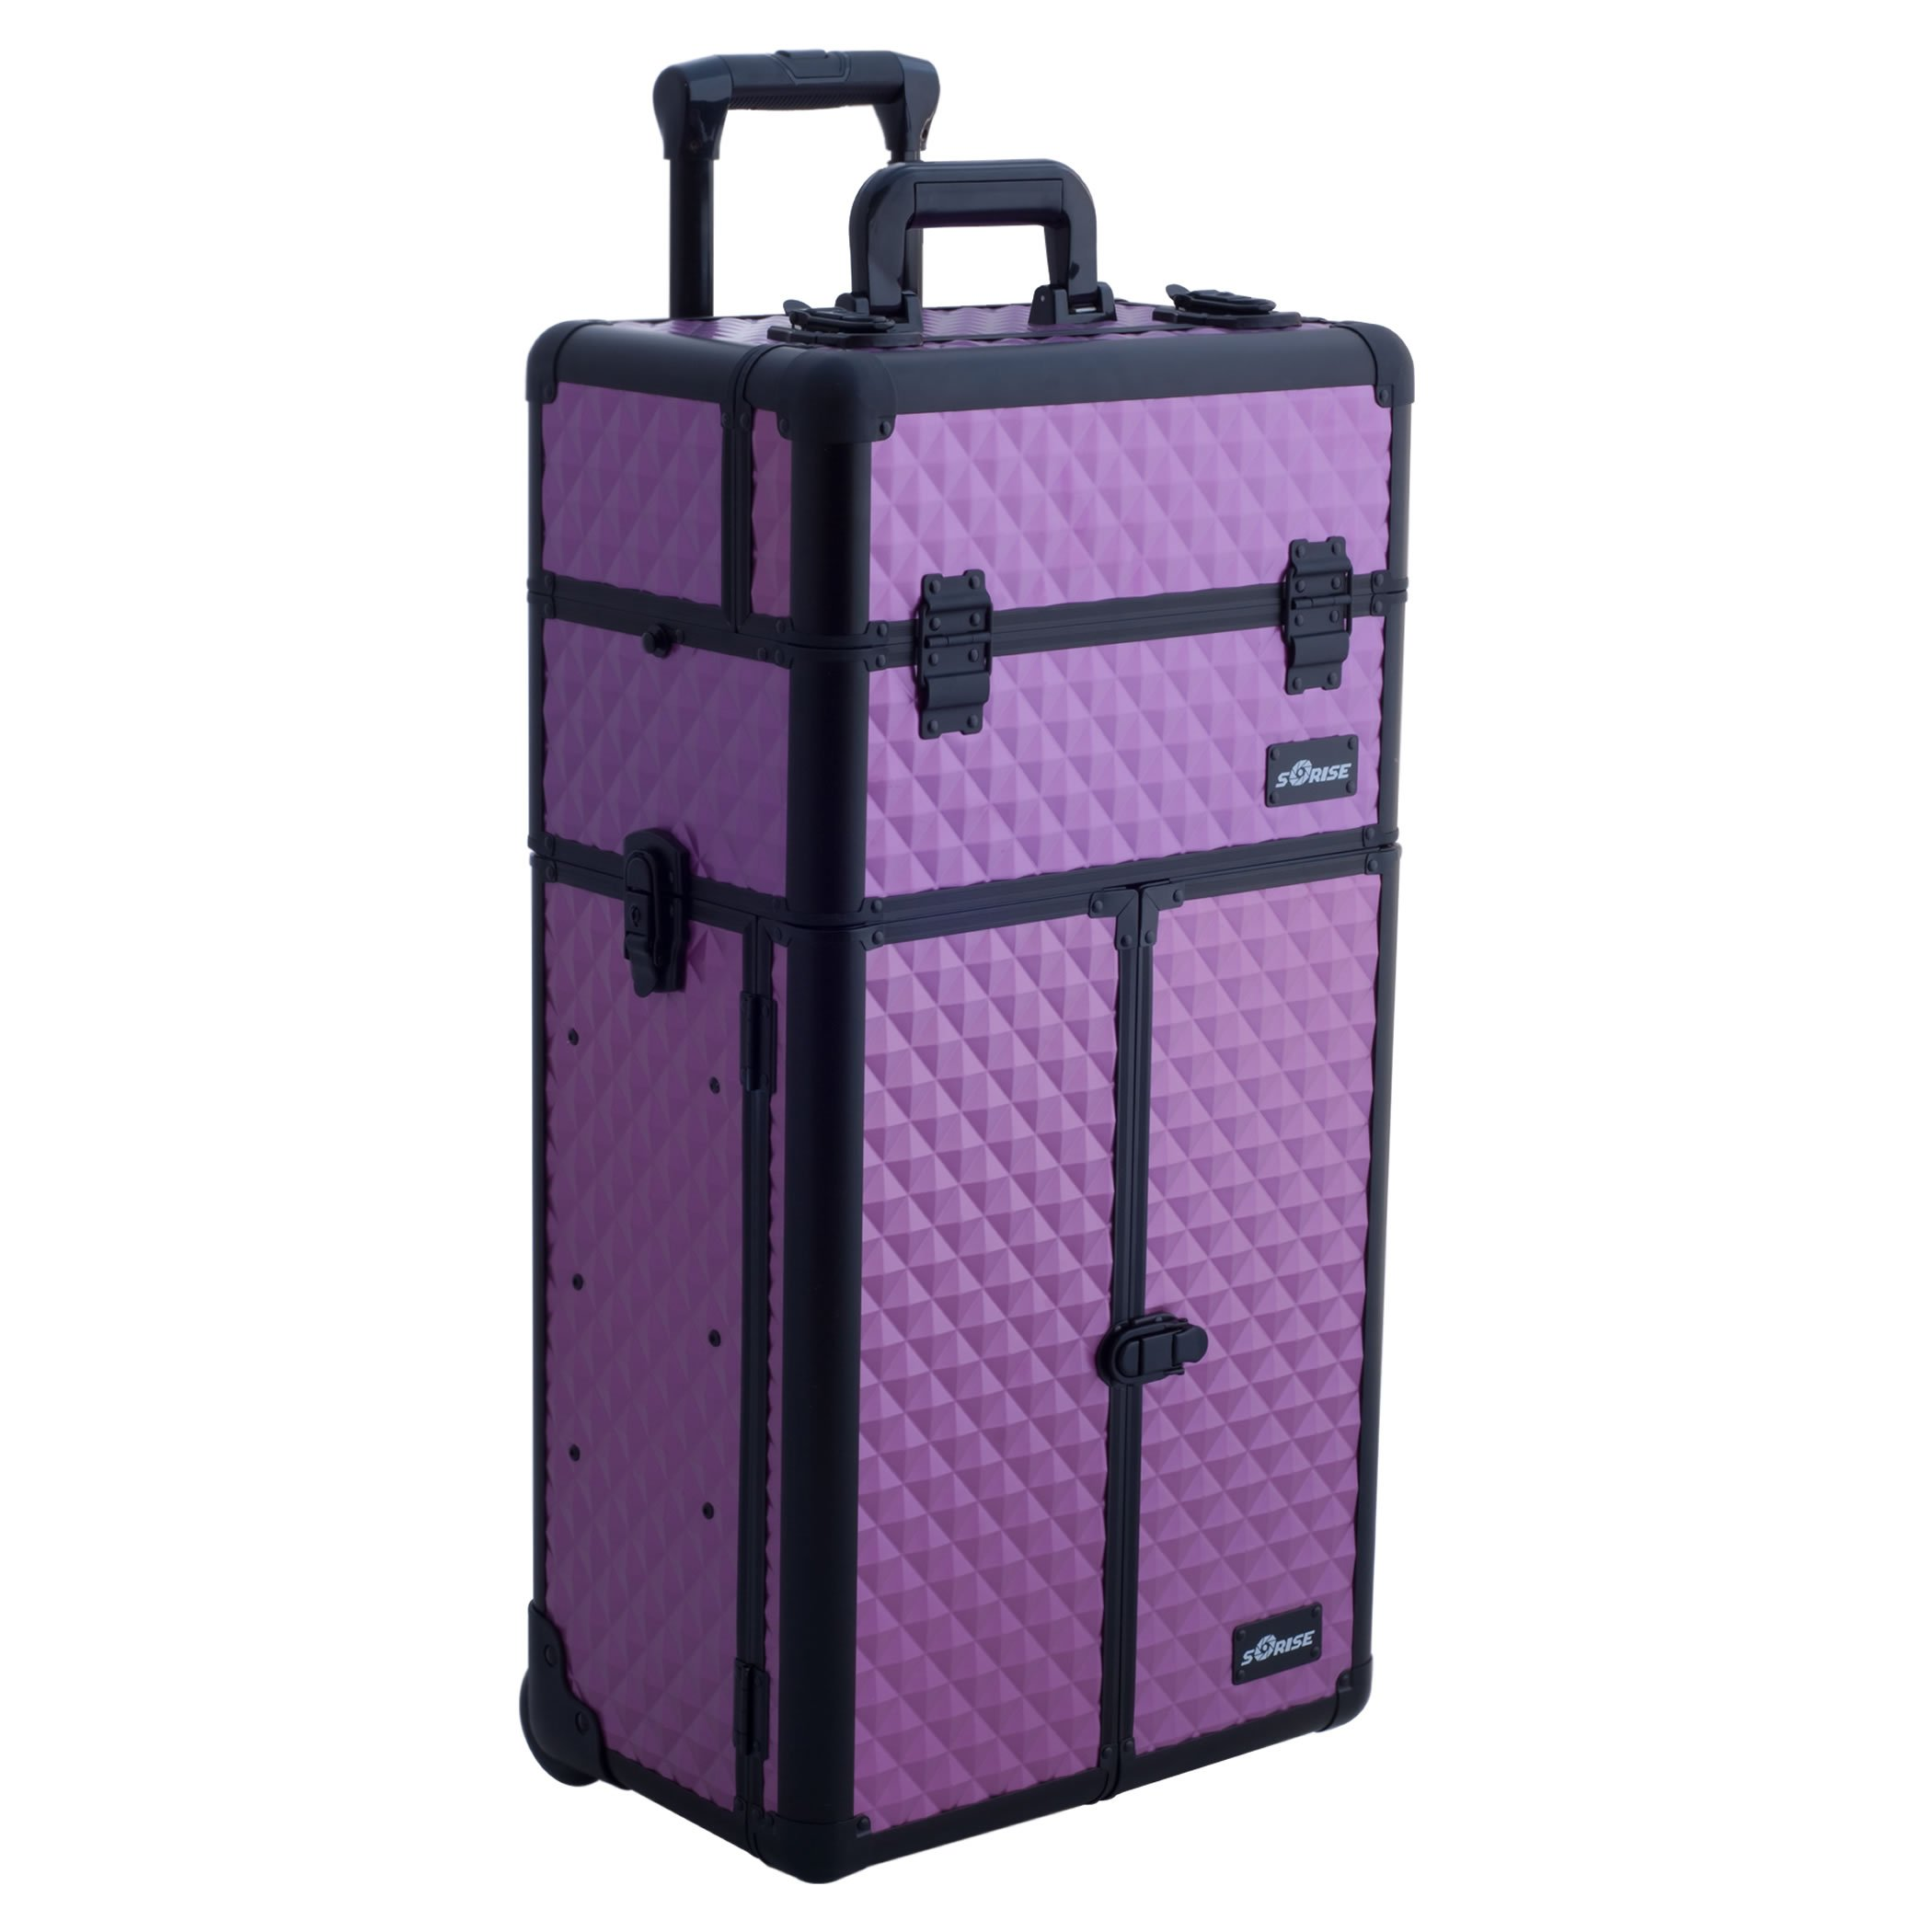 SUNRISE Makeup Case on Wheels 2 in 1 Professional Trolley I3466, French Doors, 6 Trays and 2 Drawers, Adjustable Dividers, Locking with Mirror and Shoulder Strap, Purple Diamond by SunRise